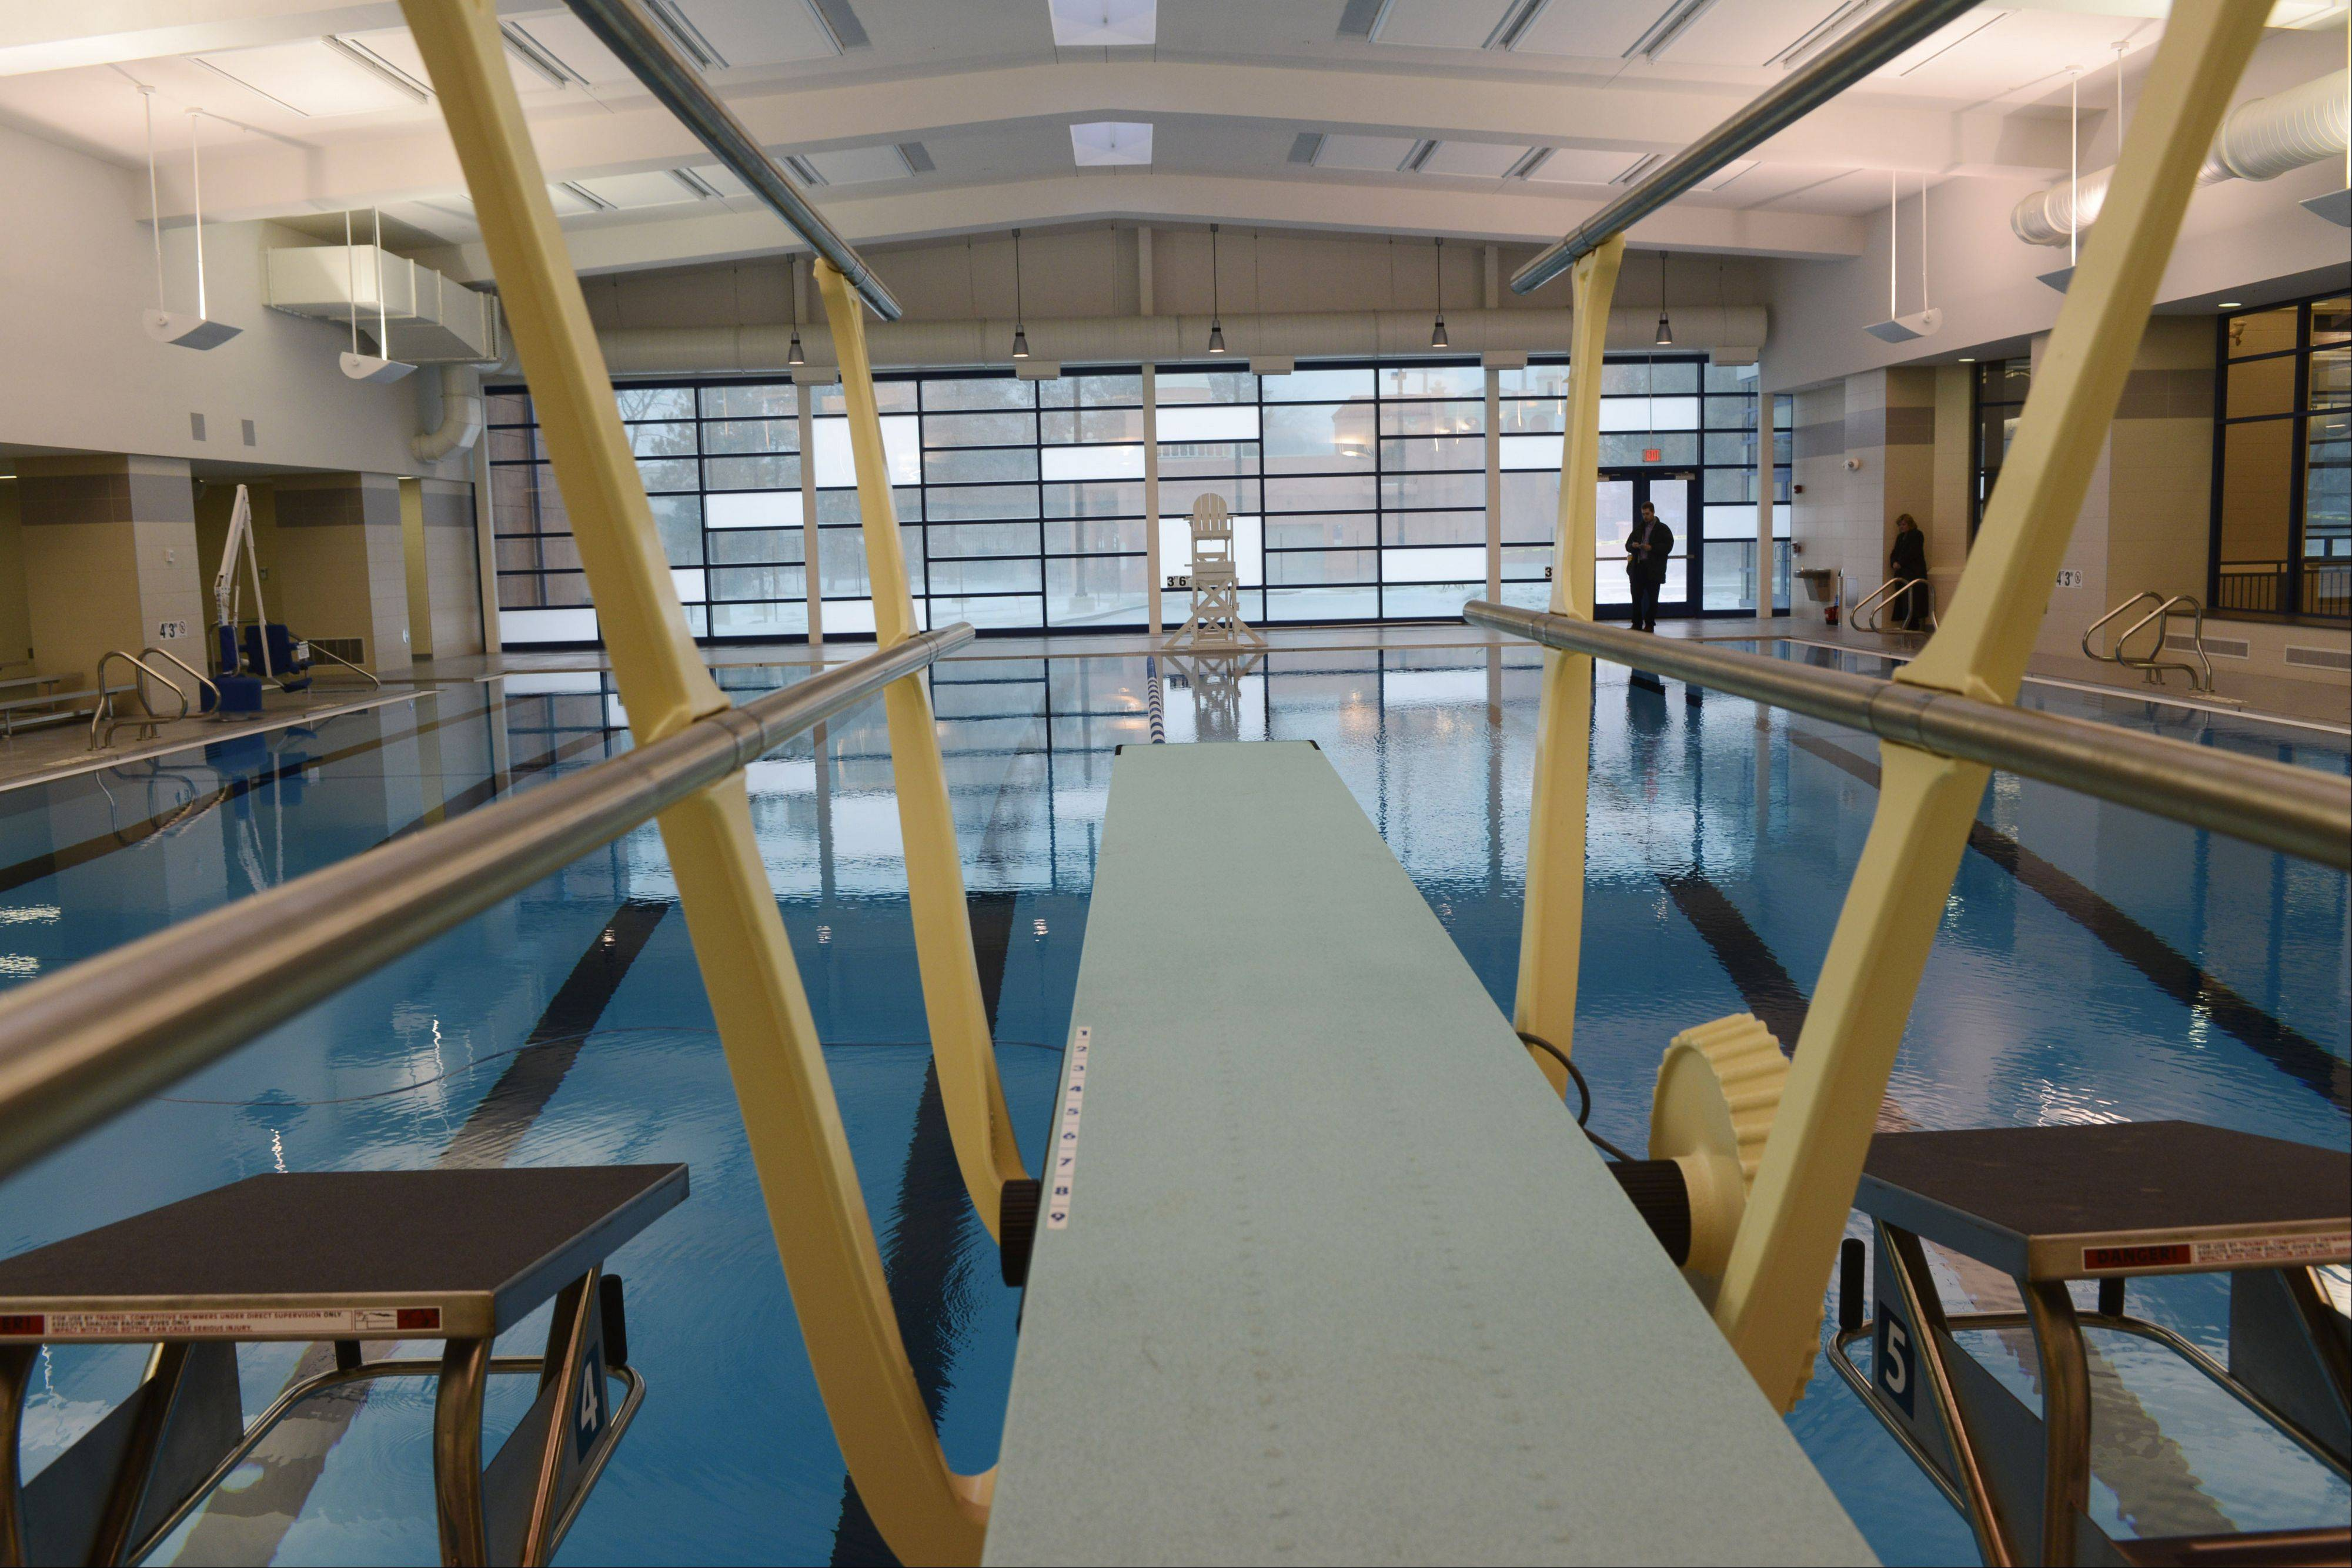 The Elk Grove Park District is ready to unveil renovations to the Pavilion Aquatics Center, which includes an expanded eight-lane, 25-yard indoor lap pool with new diving board.